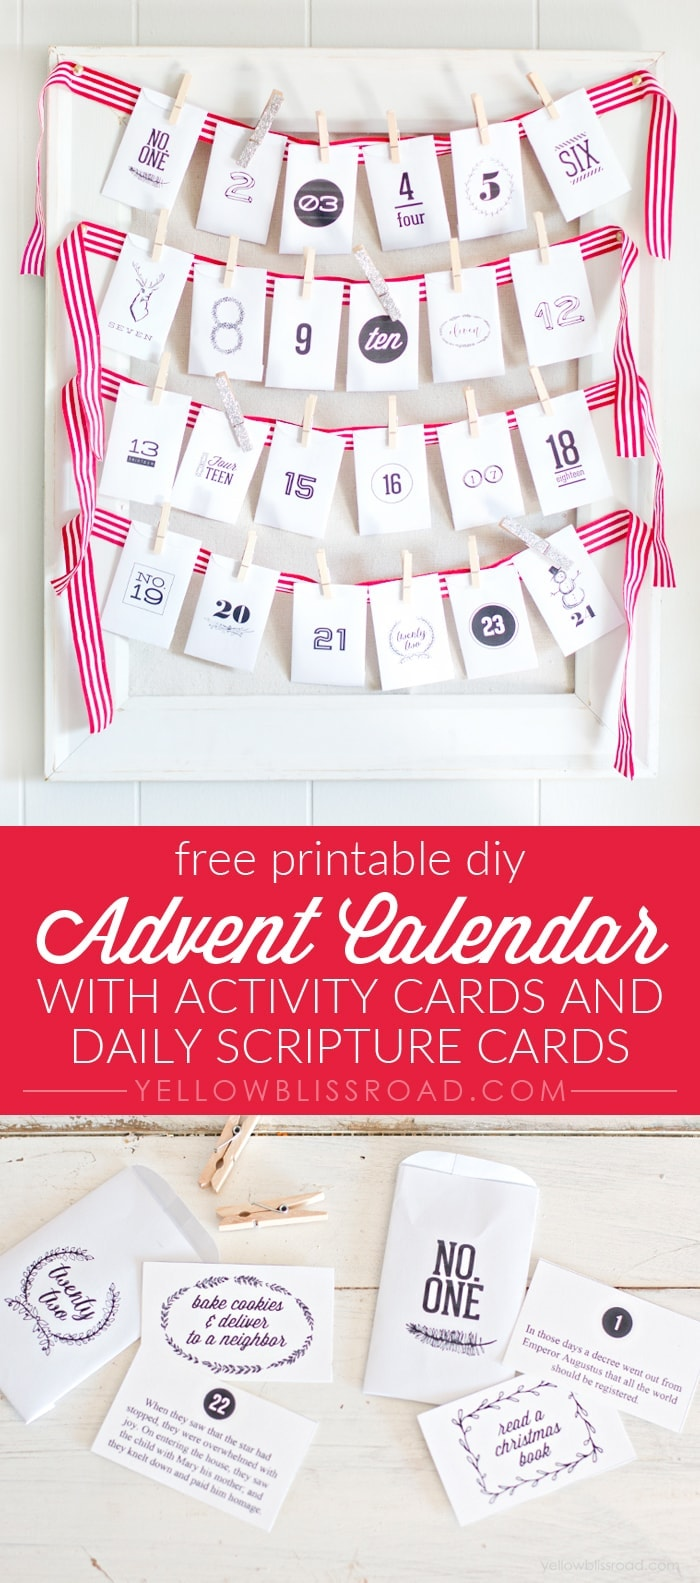 Diy Calendar For Kindergarten : Diy advent calendar with activities and scripture yellow